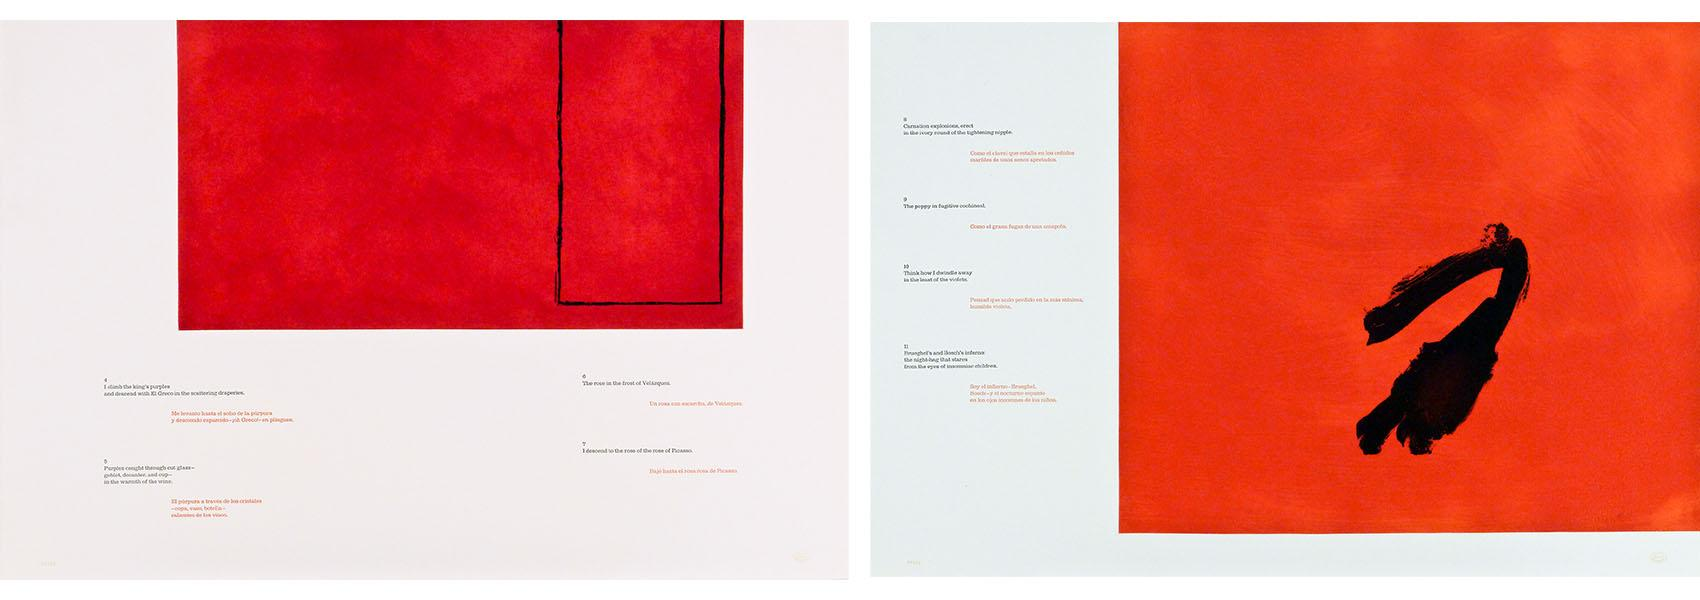 Two prints from the portfolio A la pintura by Robert Motherwell